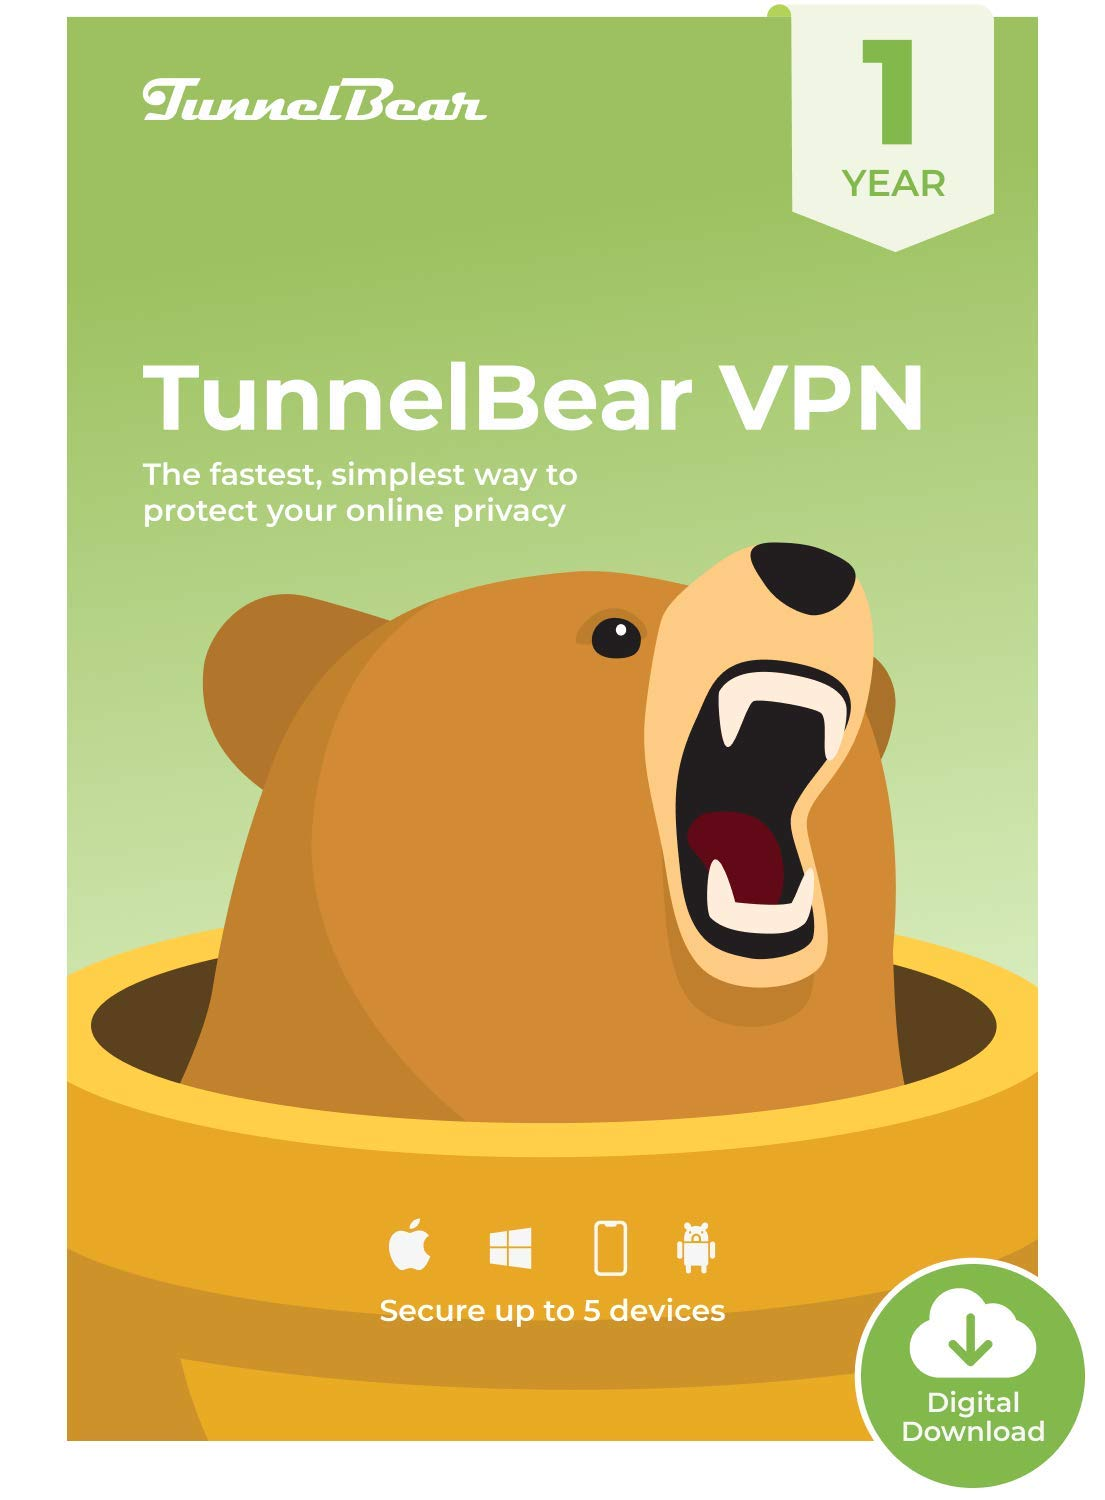 TunnelBear VPN|Wifi and Internet Privacy|5 Devices|Unlimited Data|1 Year [PC Online code] by TunnelBear LLC